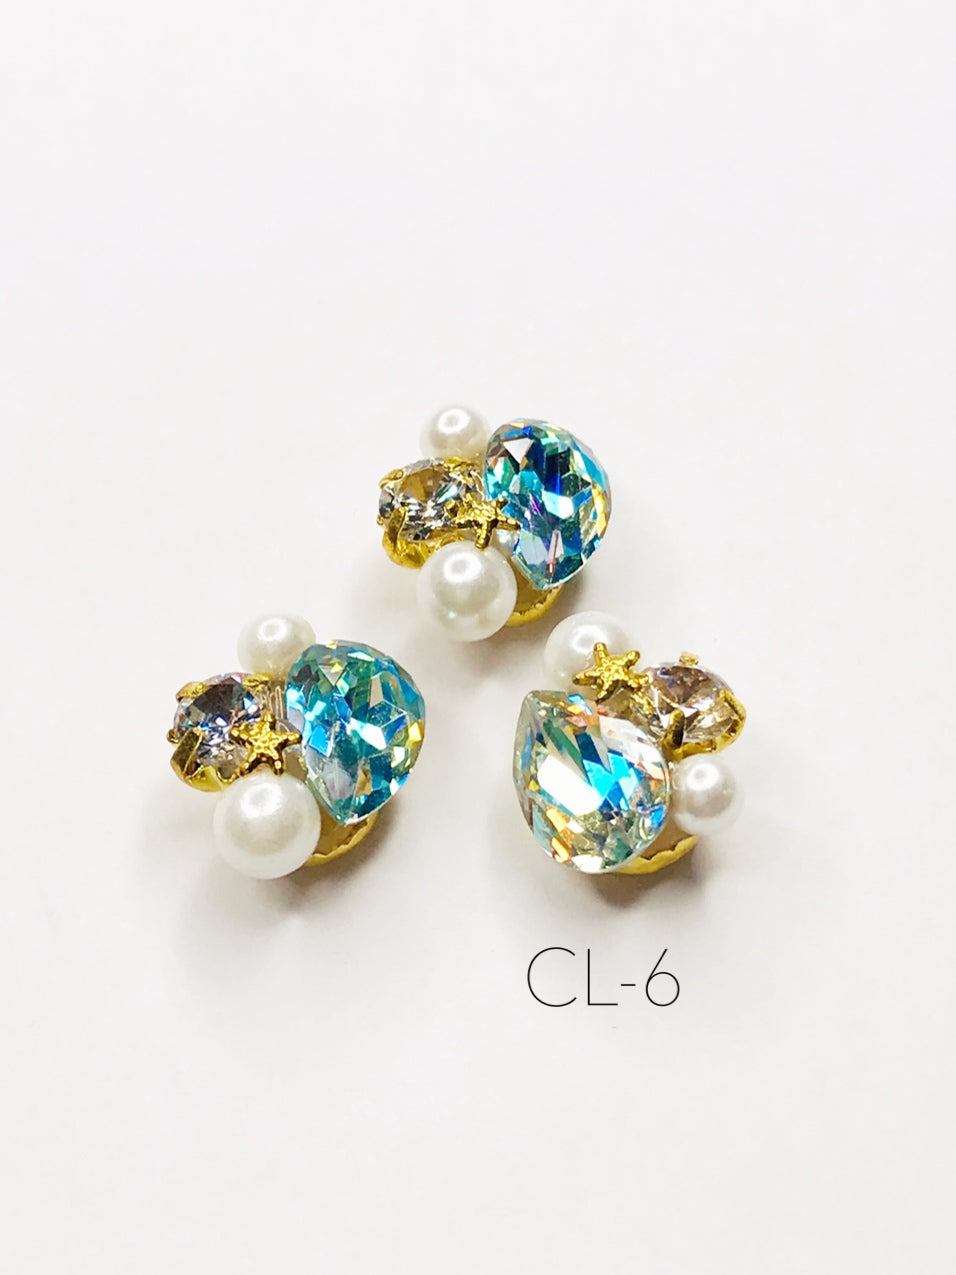 SHINE- Zircon Cluster Mermaid Charm, #CL-6